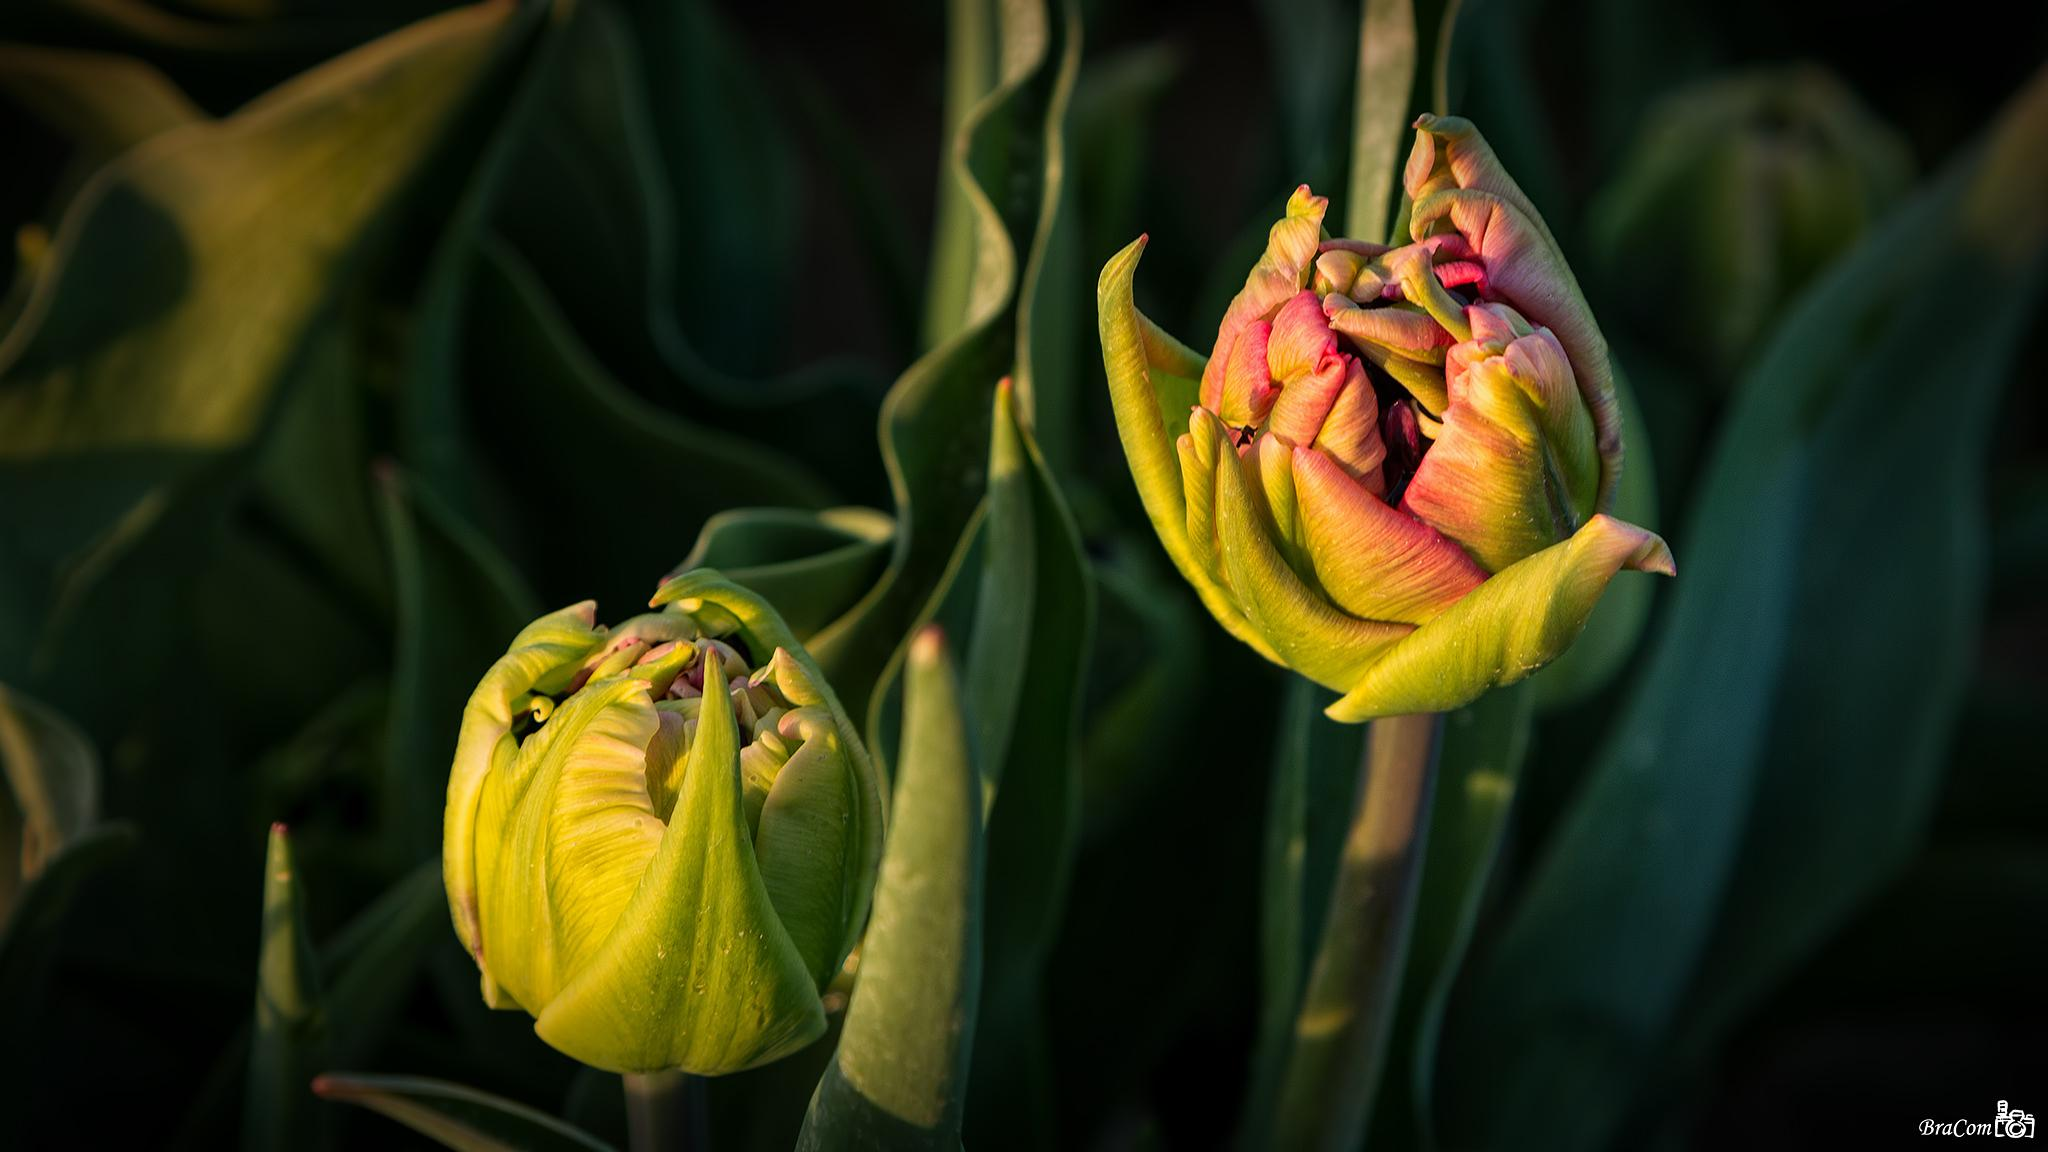 Tulip still in bud, the first of 2015 by Bram van Broekhoven